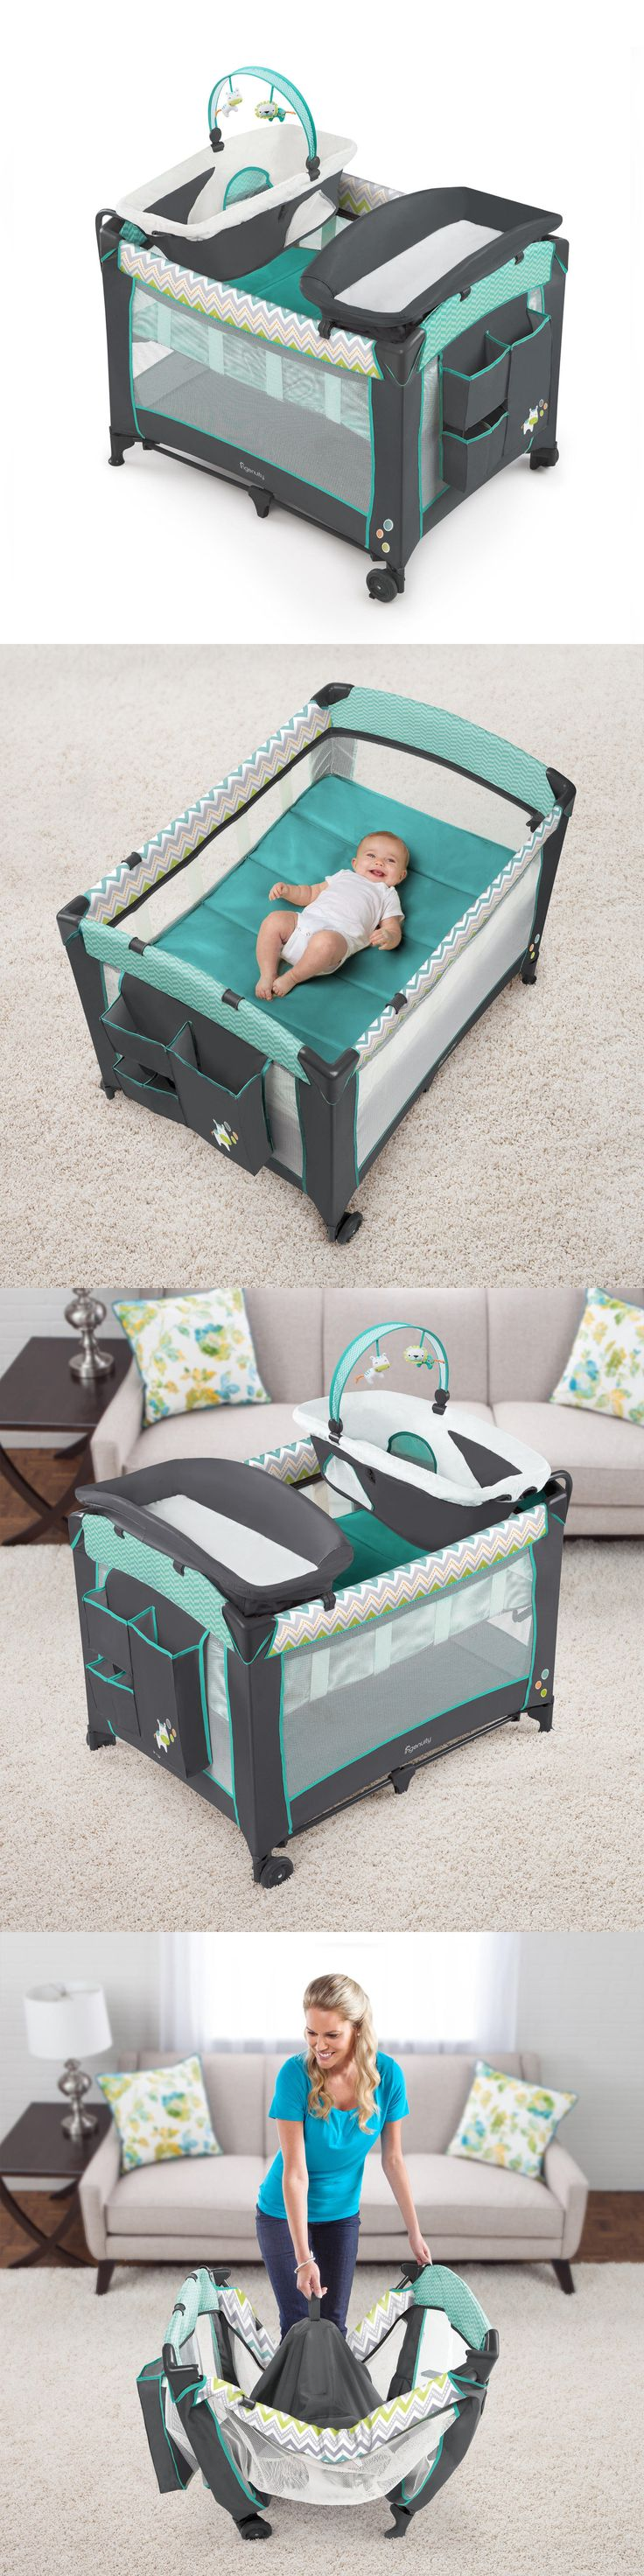 Baby Nursery: Baby Nursery Bassinet Infant Sleeper Crib Newborn Playard Folding Changing Table BUY IT NOW ONLY: $108.99